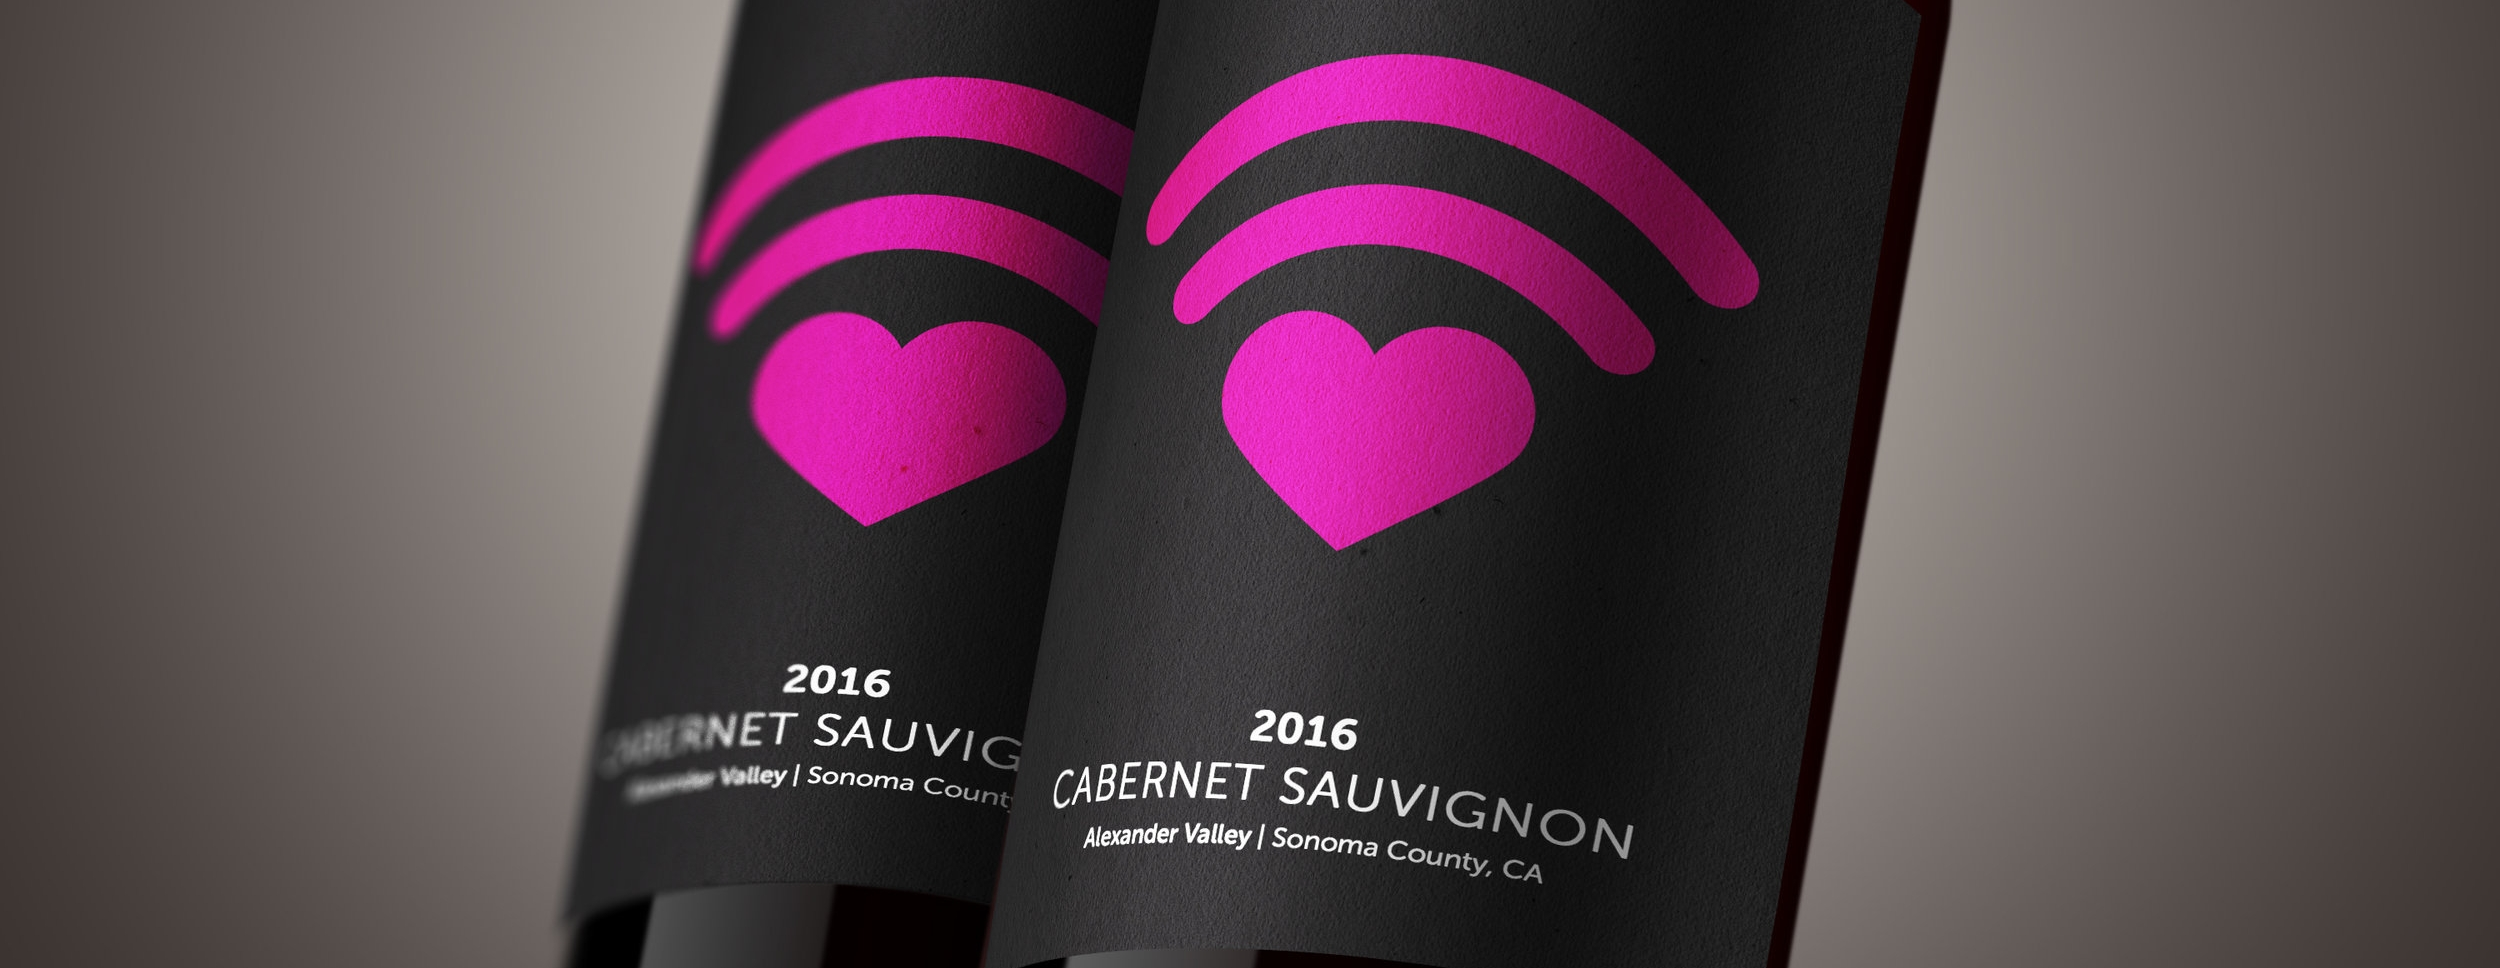 wine-bottle-label-mockup_heart_drk.jpg